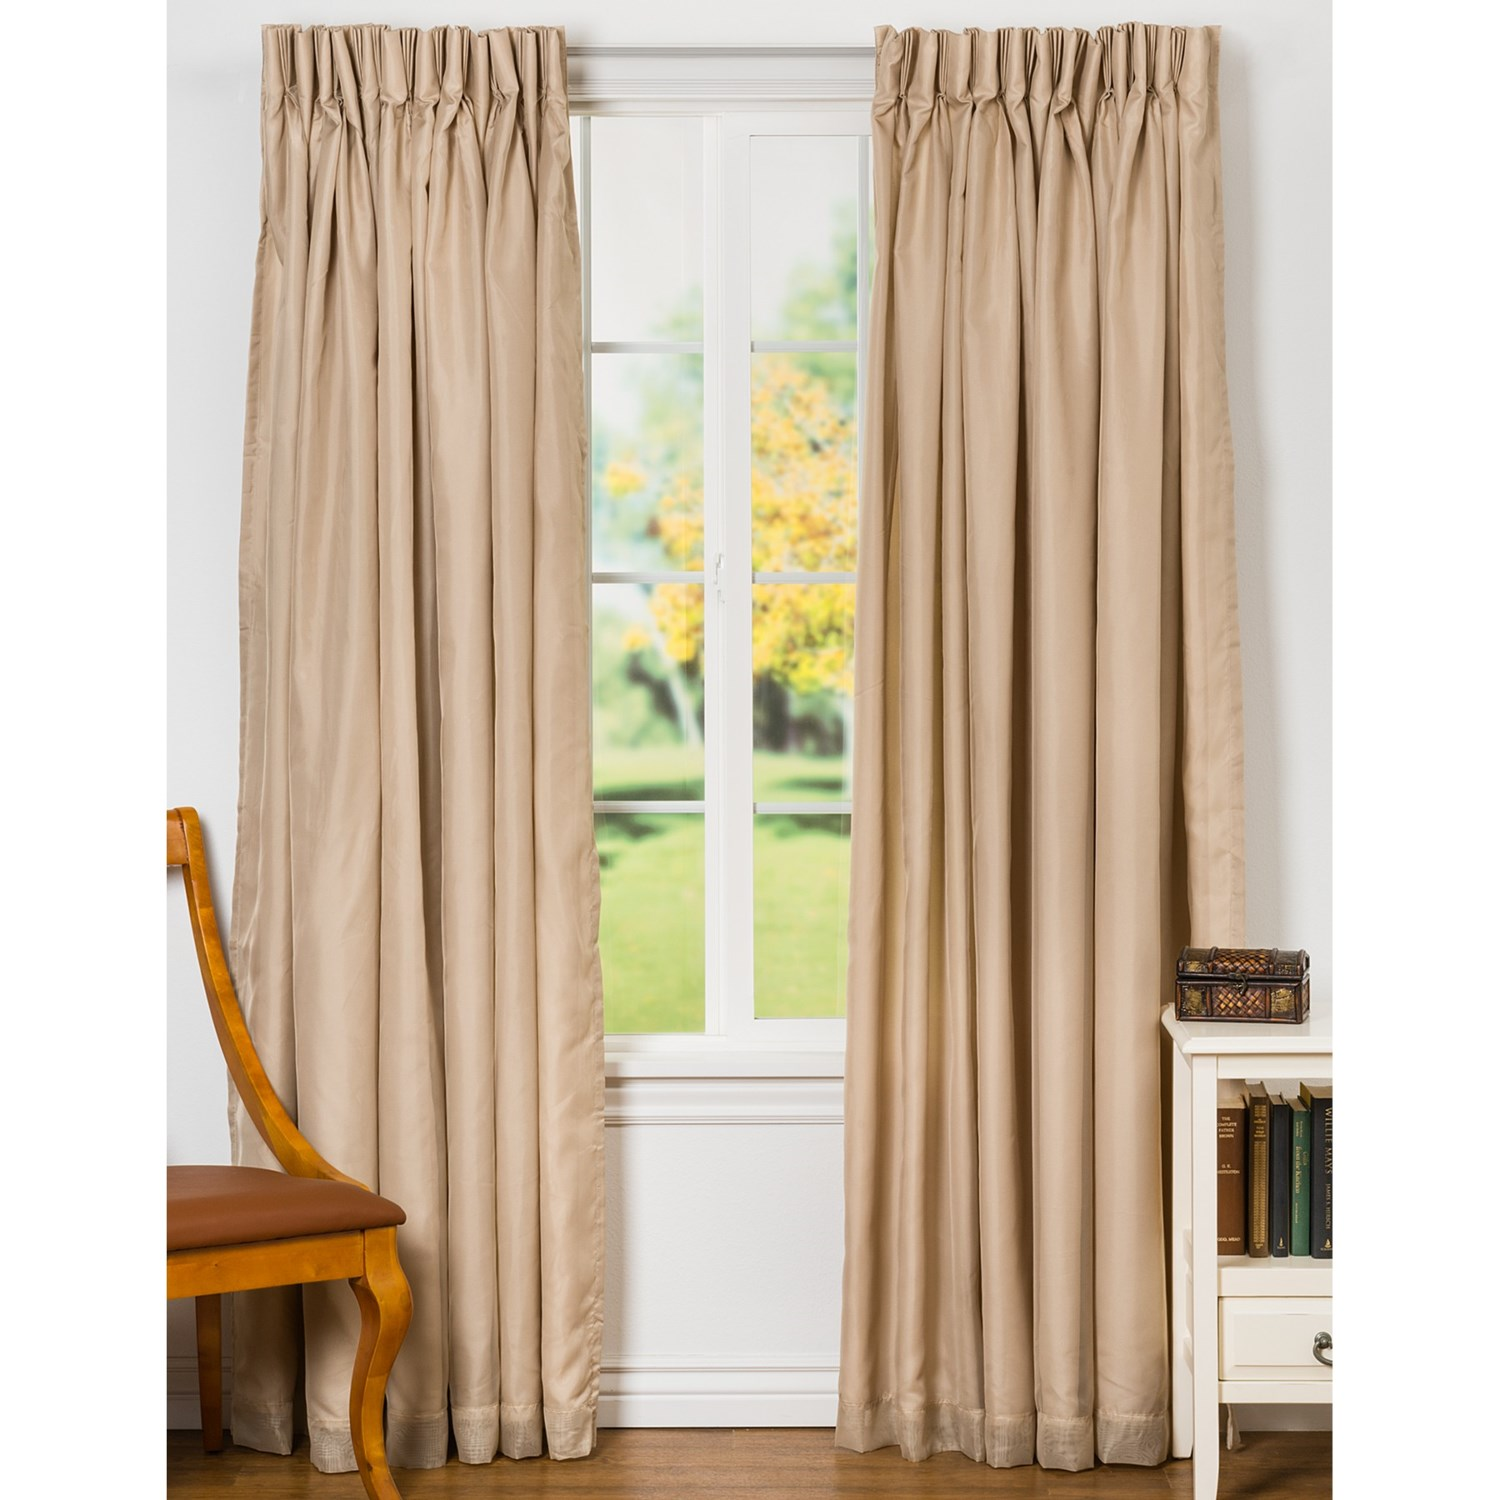 Commonwealth Home Fashions Rhapsody Semi Sheer Curtains 120x84 Pinch Pleat Insulated Save 59